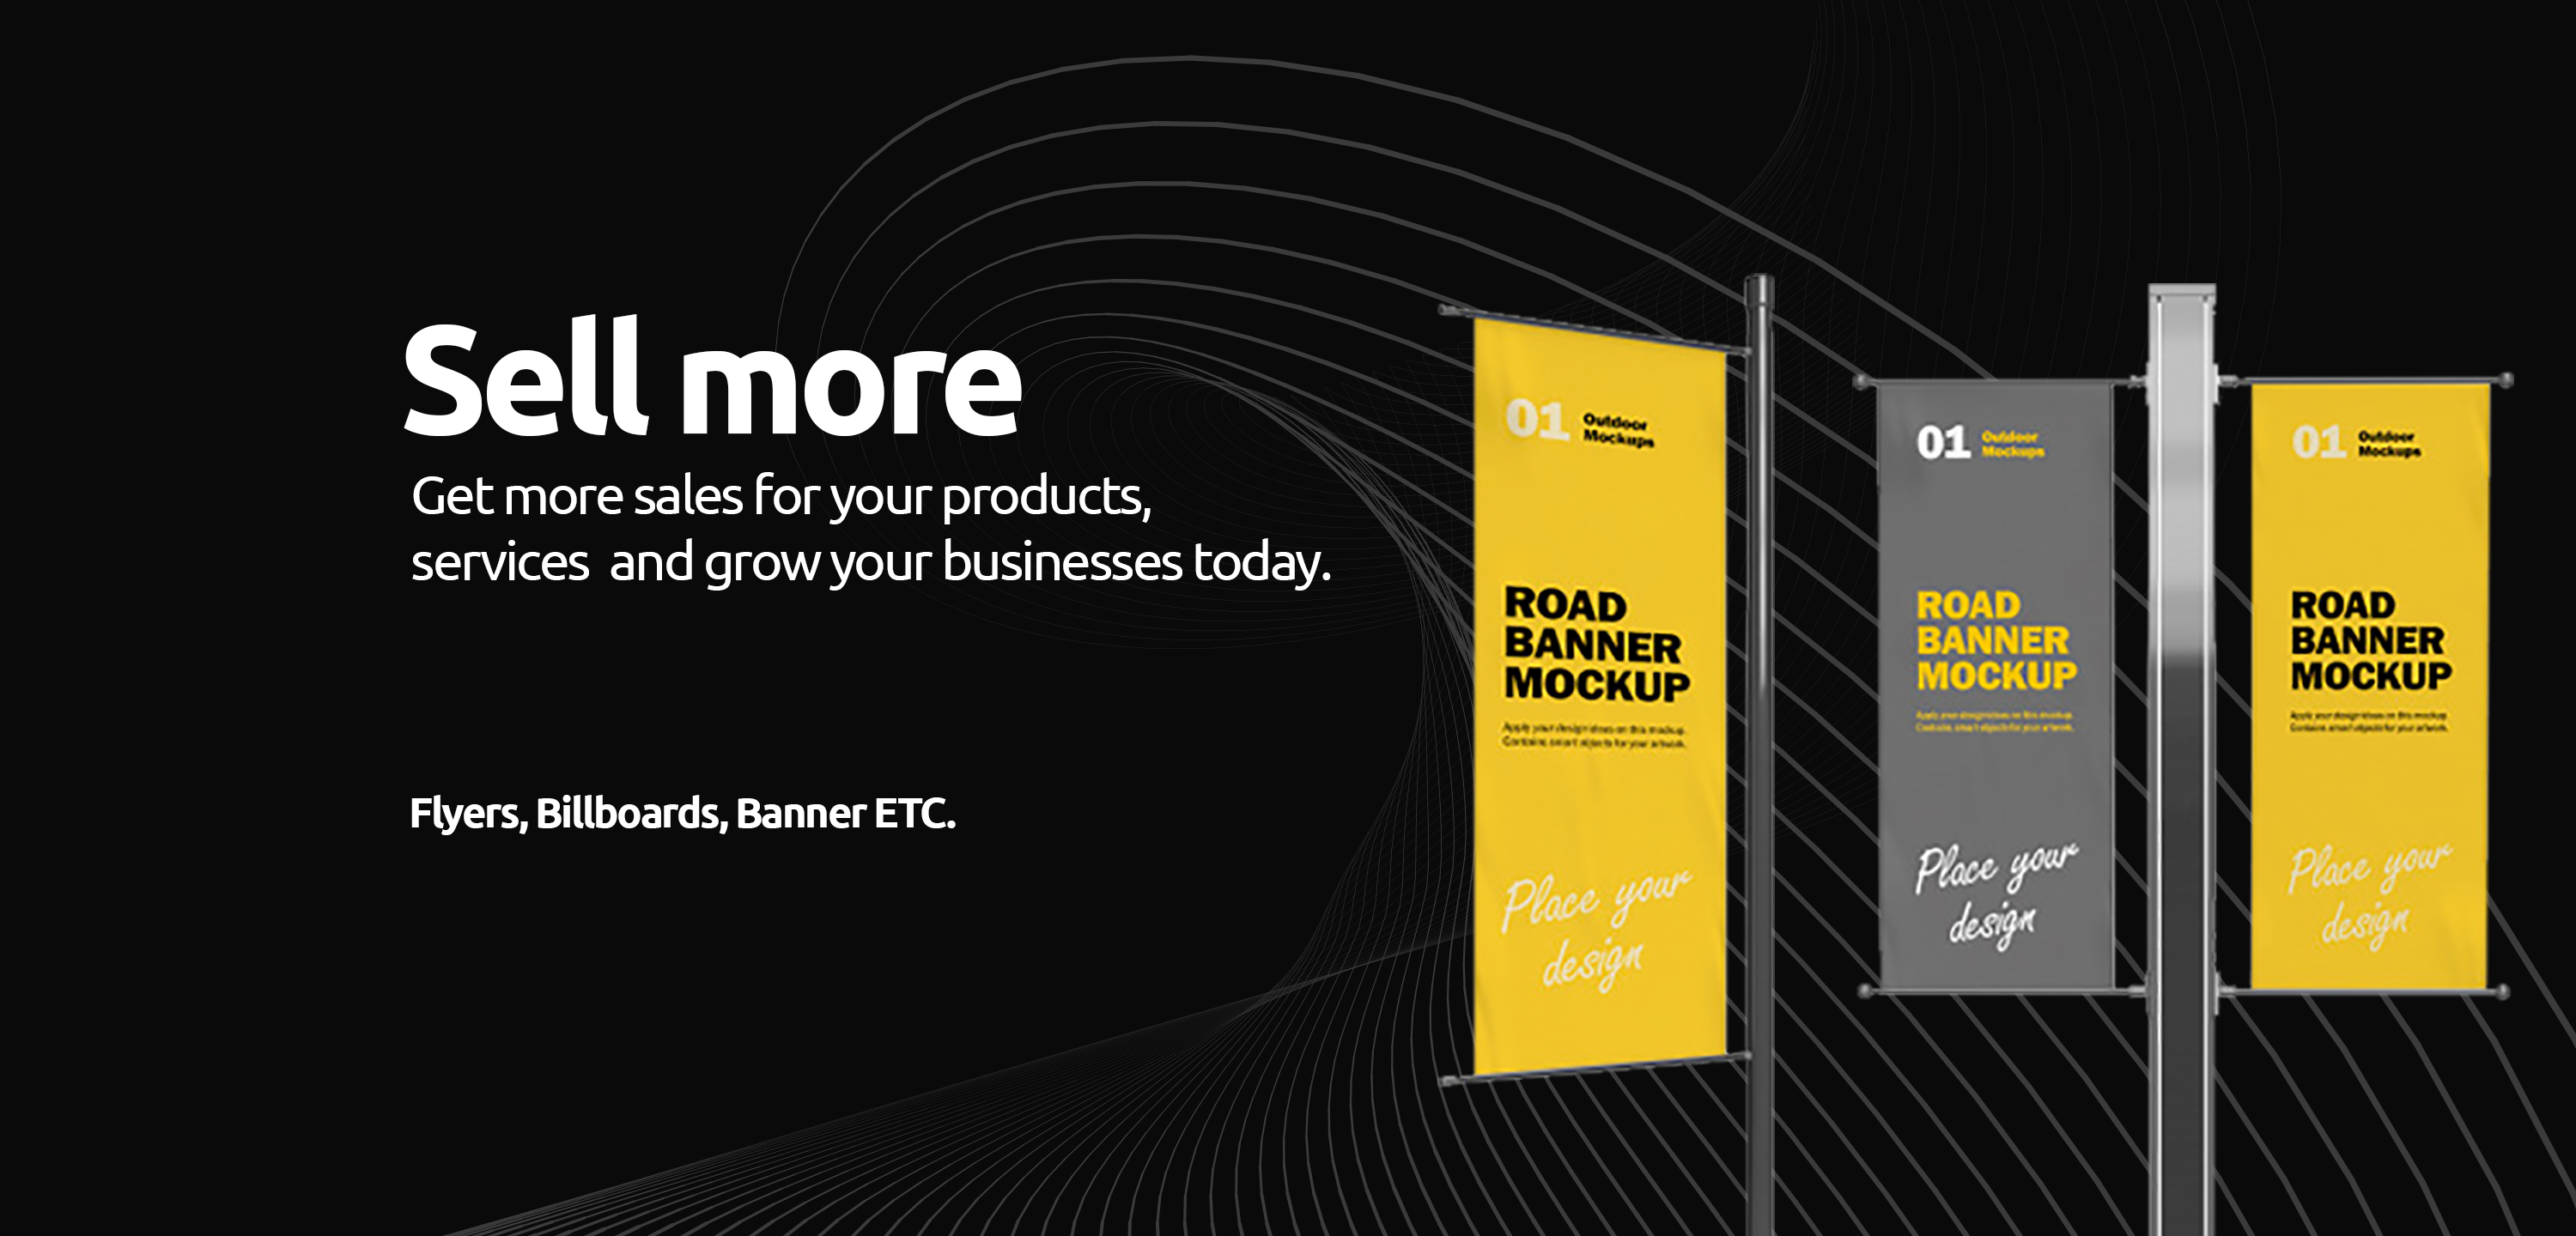 Get more sales for your products,services and grow your businesses today.